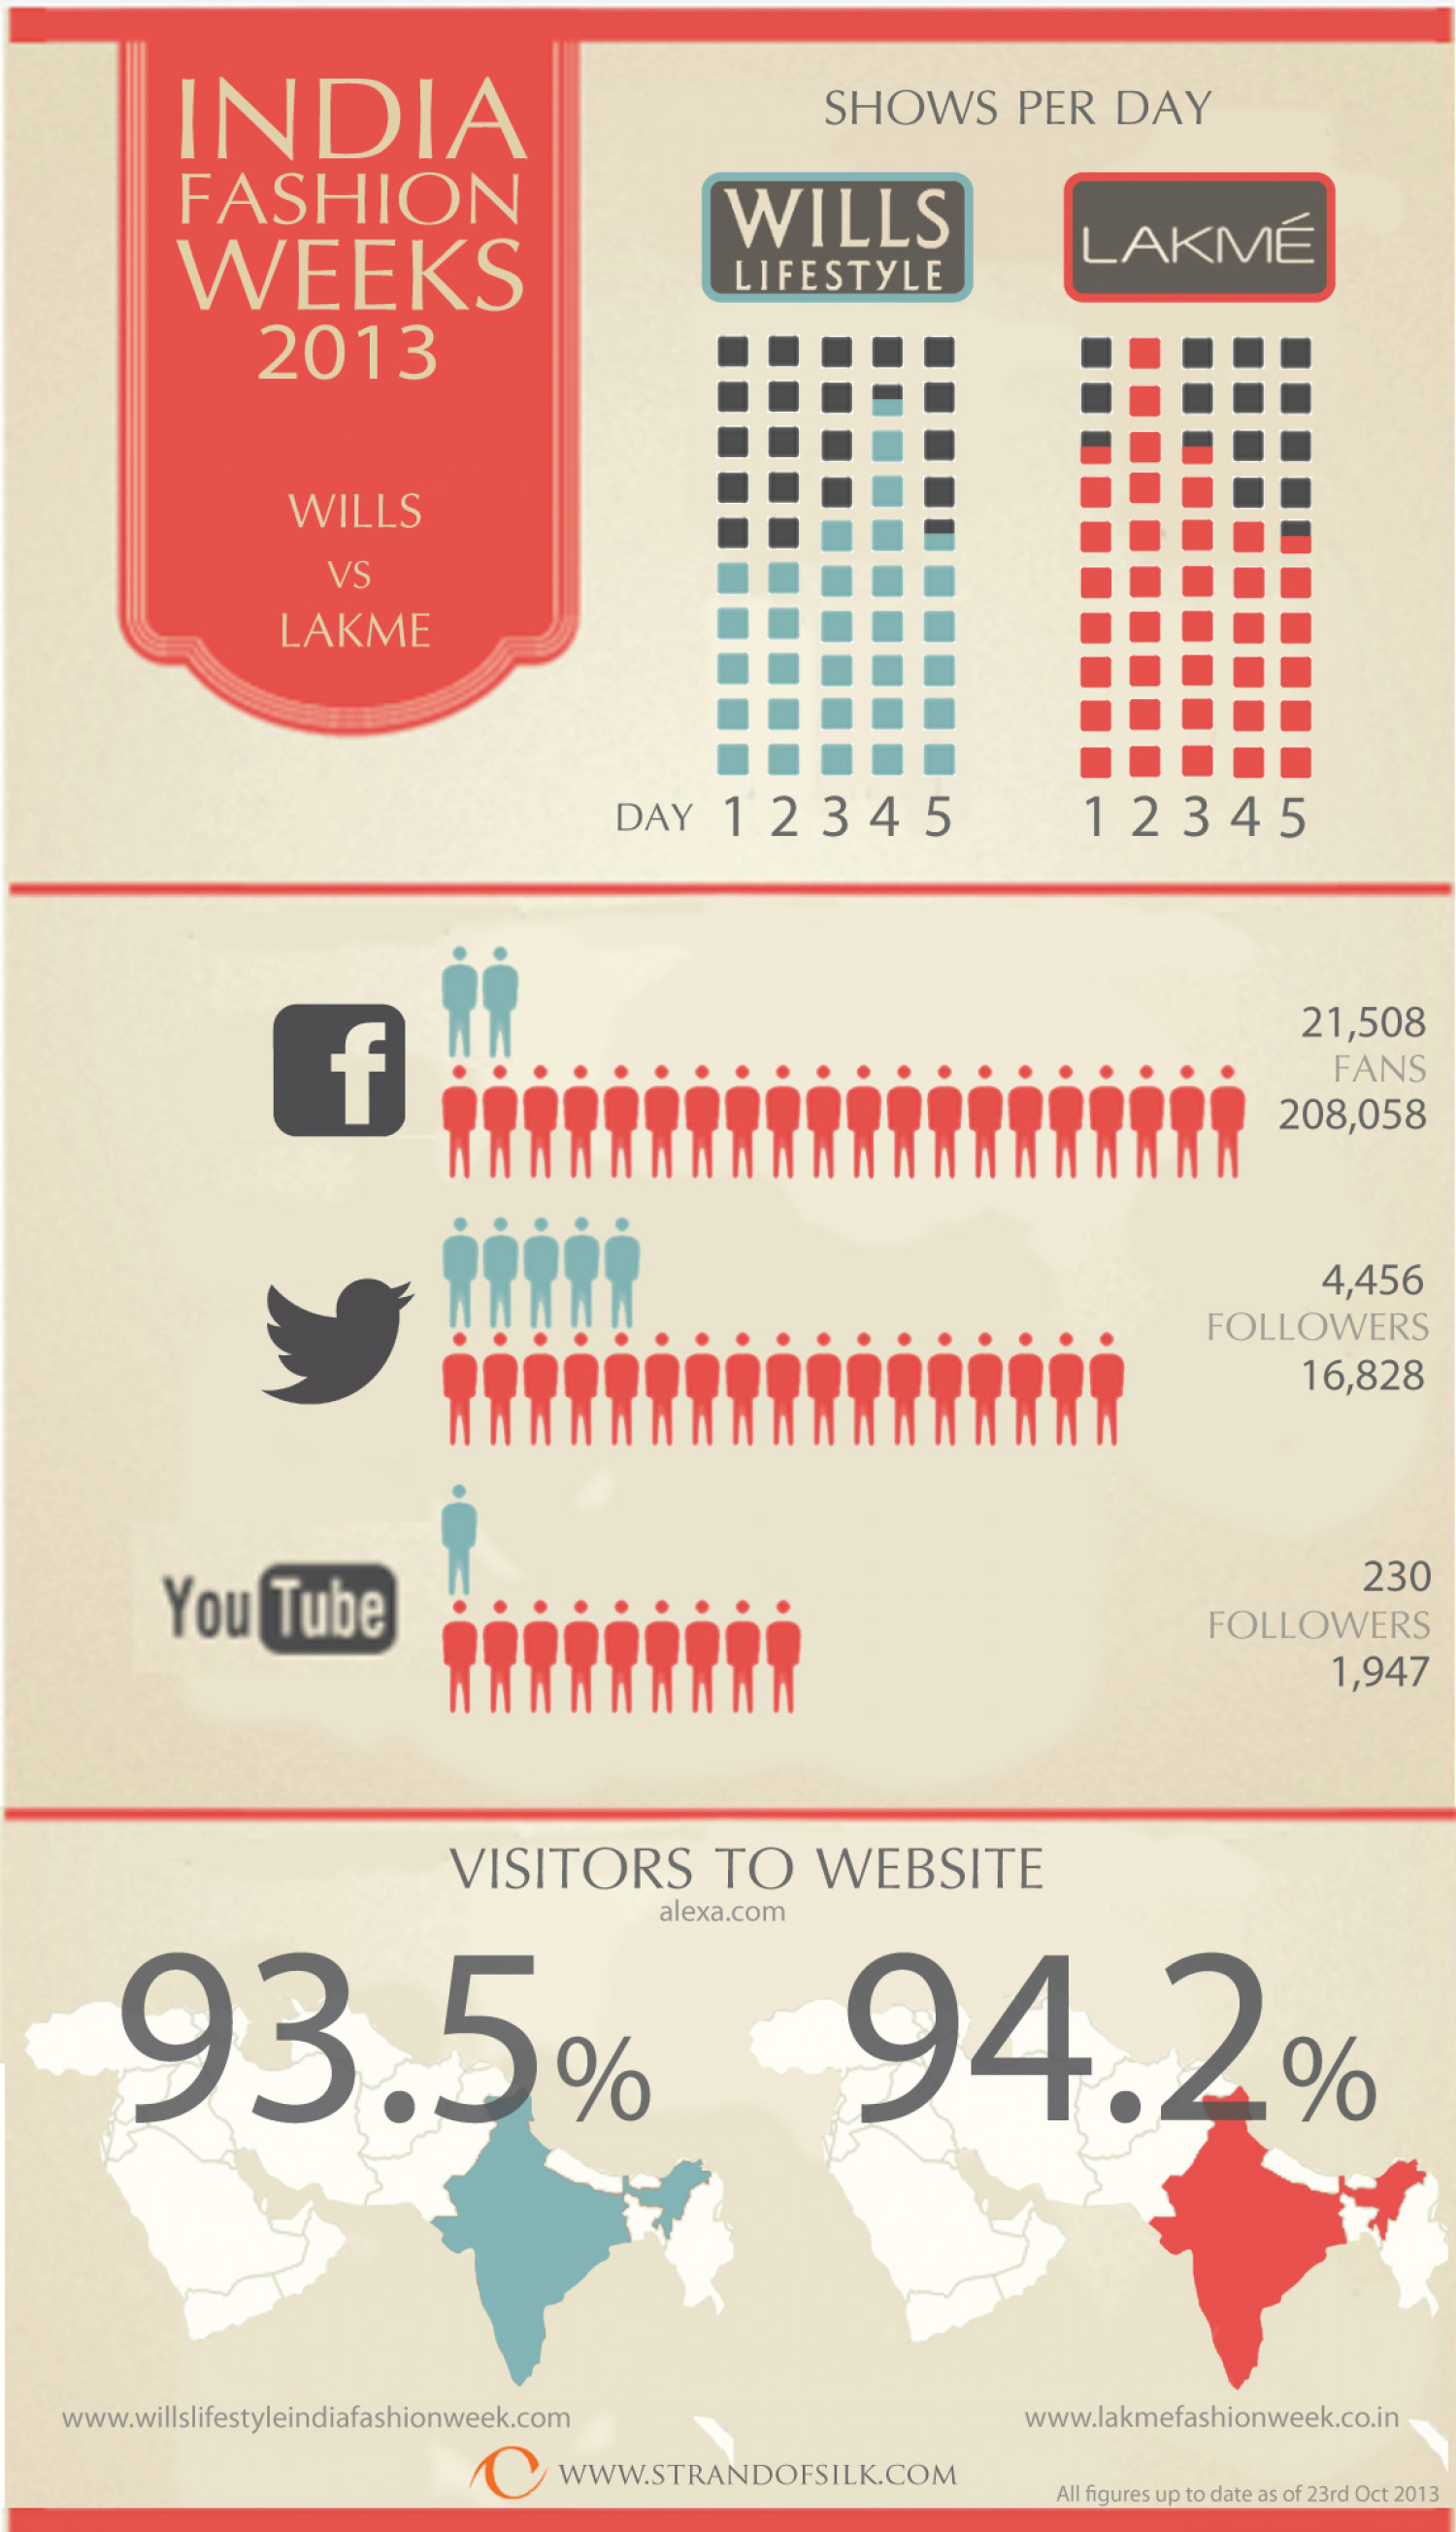 India Fashion Weeks 2013 Infographic